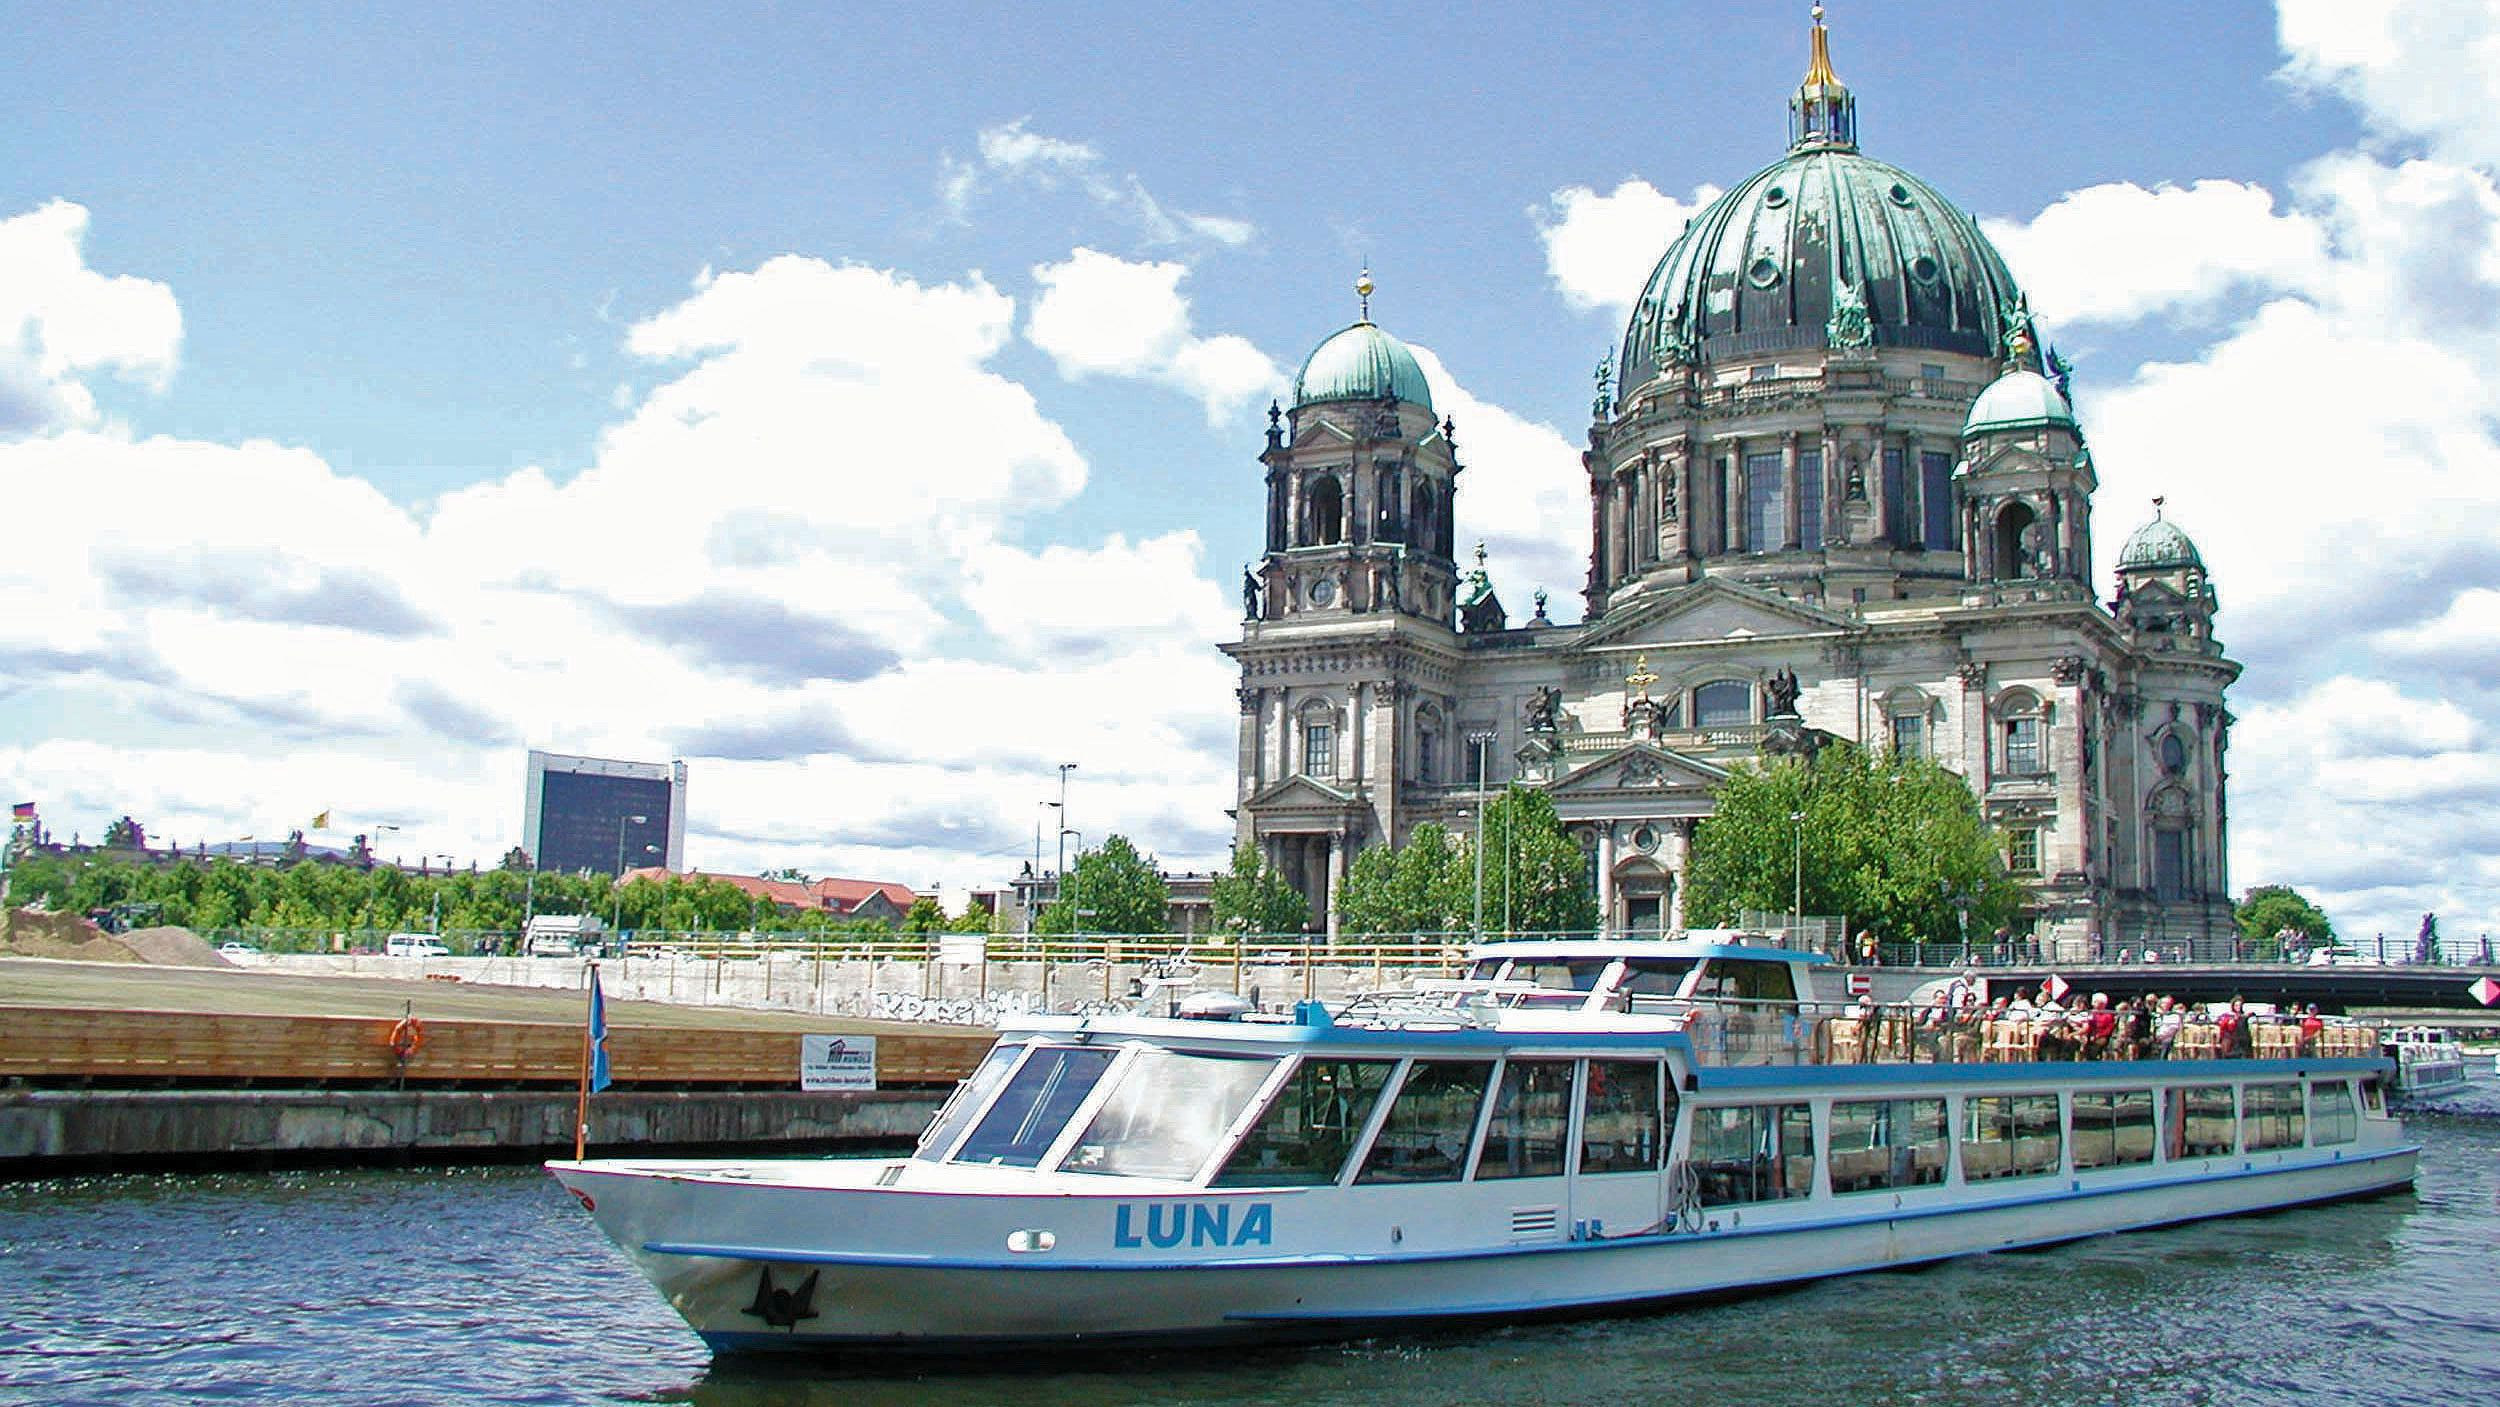 Boat sailing past the Berlin Cathedral on the banks of the Spree river in Berlin